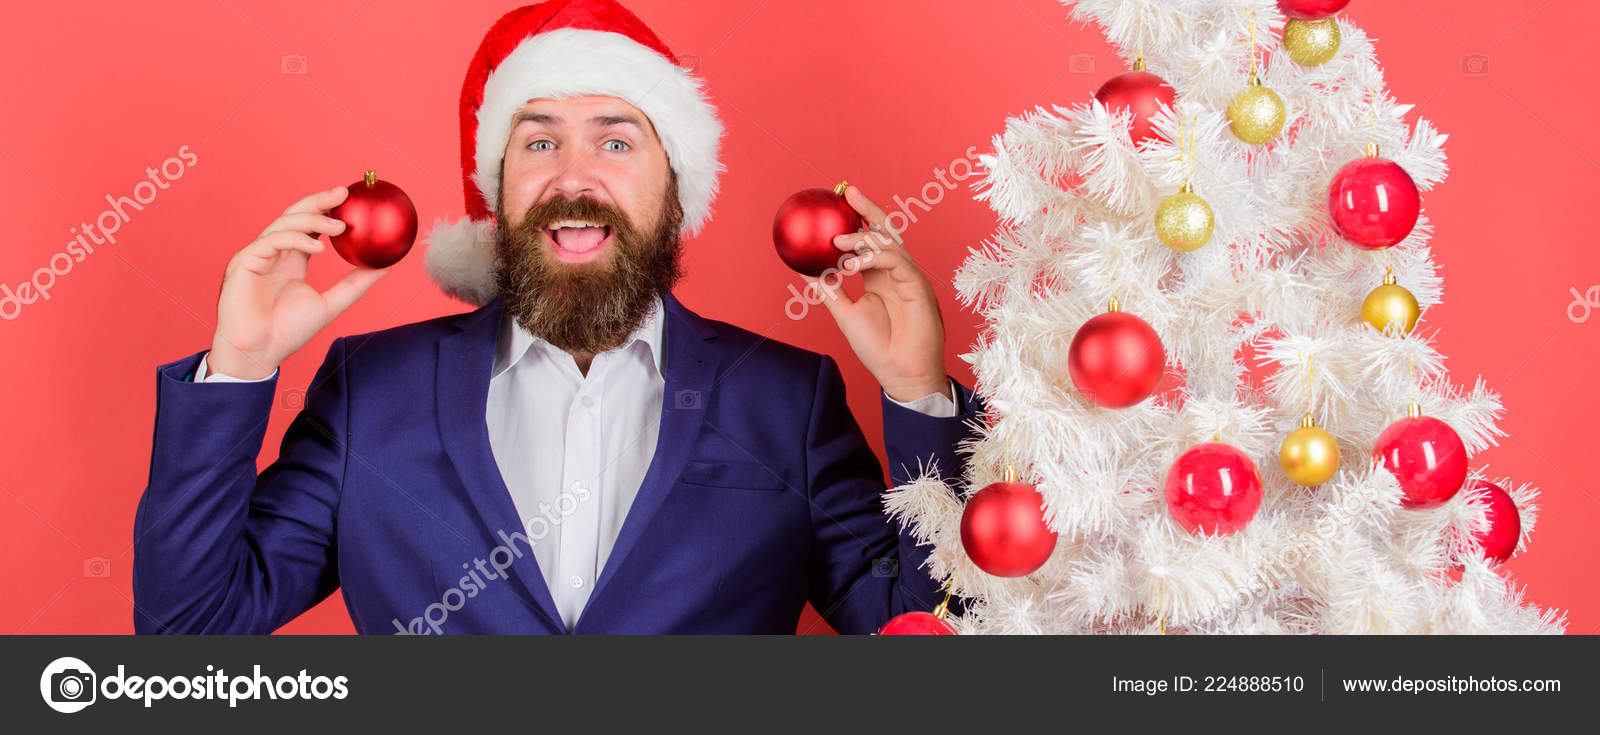 5c3cb2683cafe Merry christmas. Christmas atmosphere spread around. Add magic to holidays.  Man bearded wear formal suit and santa hat– stock image